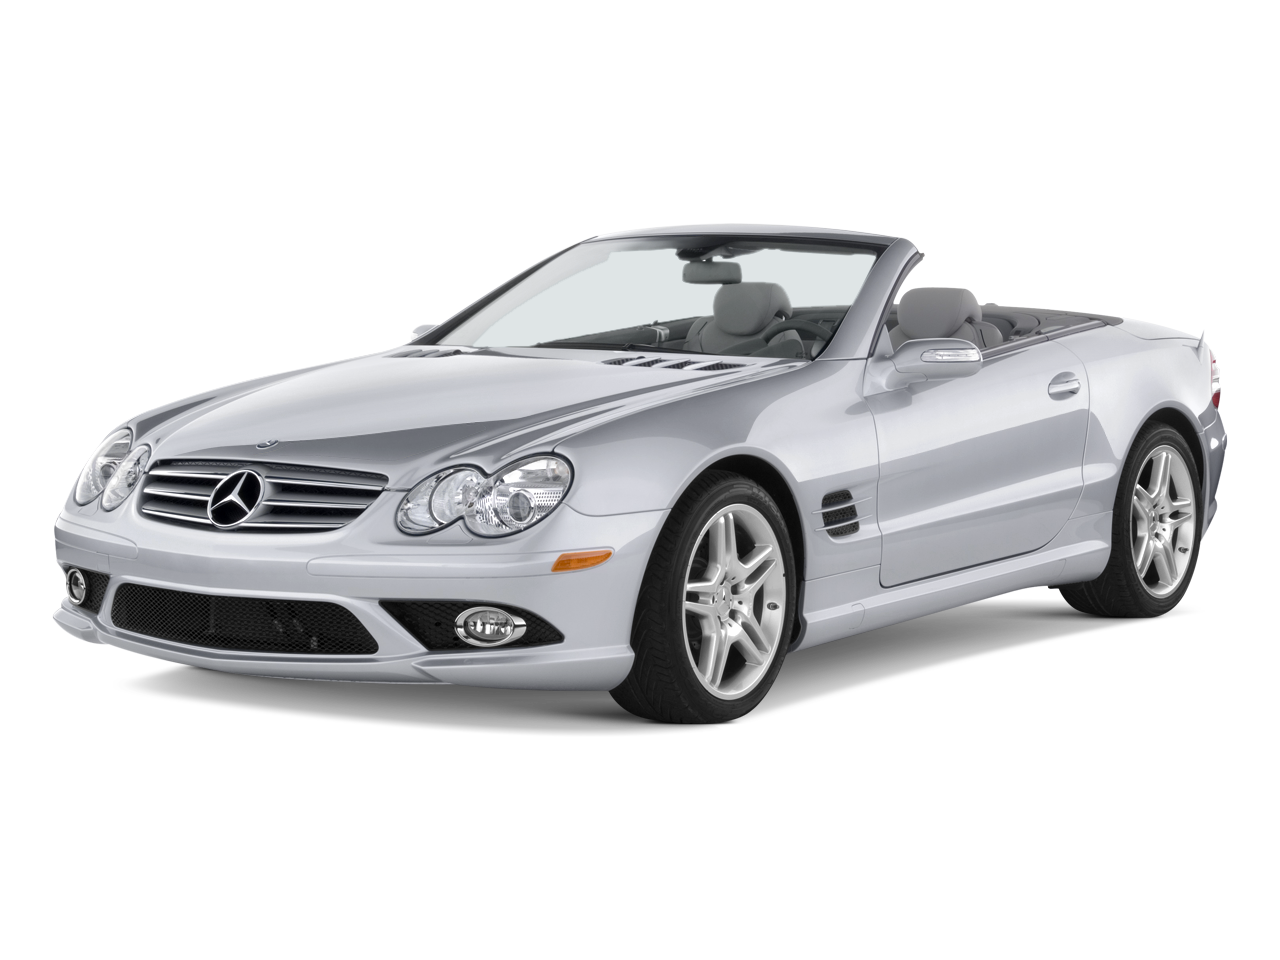 2008 mercedes benz sl class latest news features and reviews automobile magazine. Black Bedroom Furniture Sets. Home Design Ideas